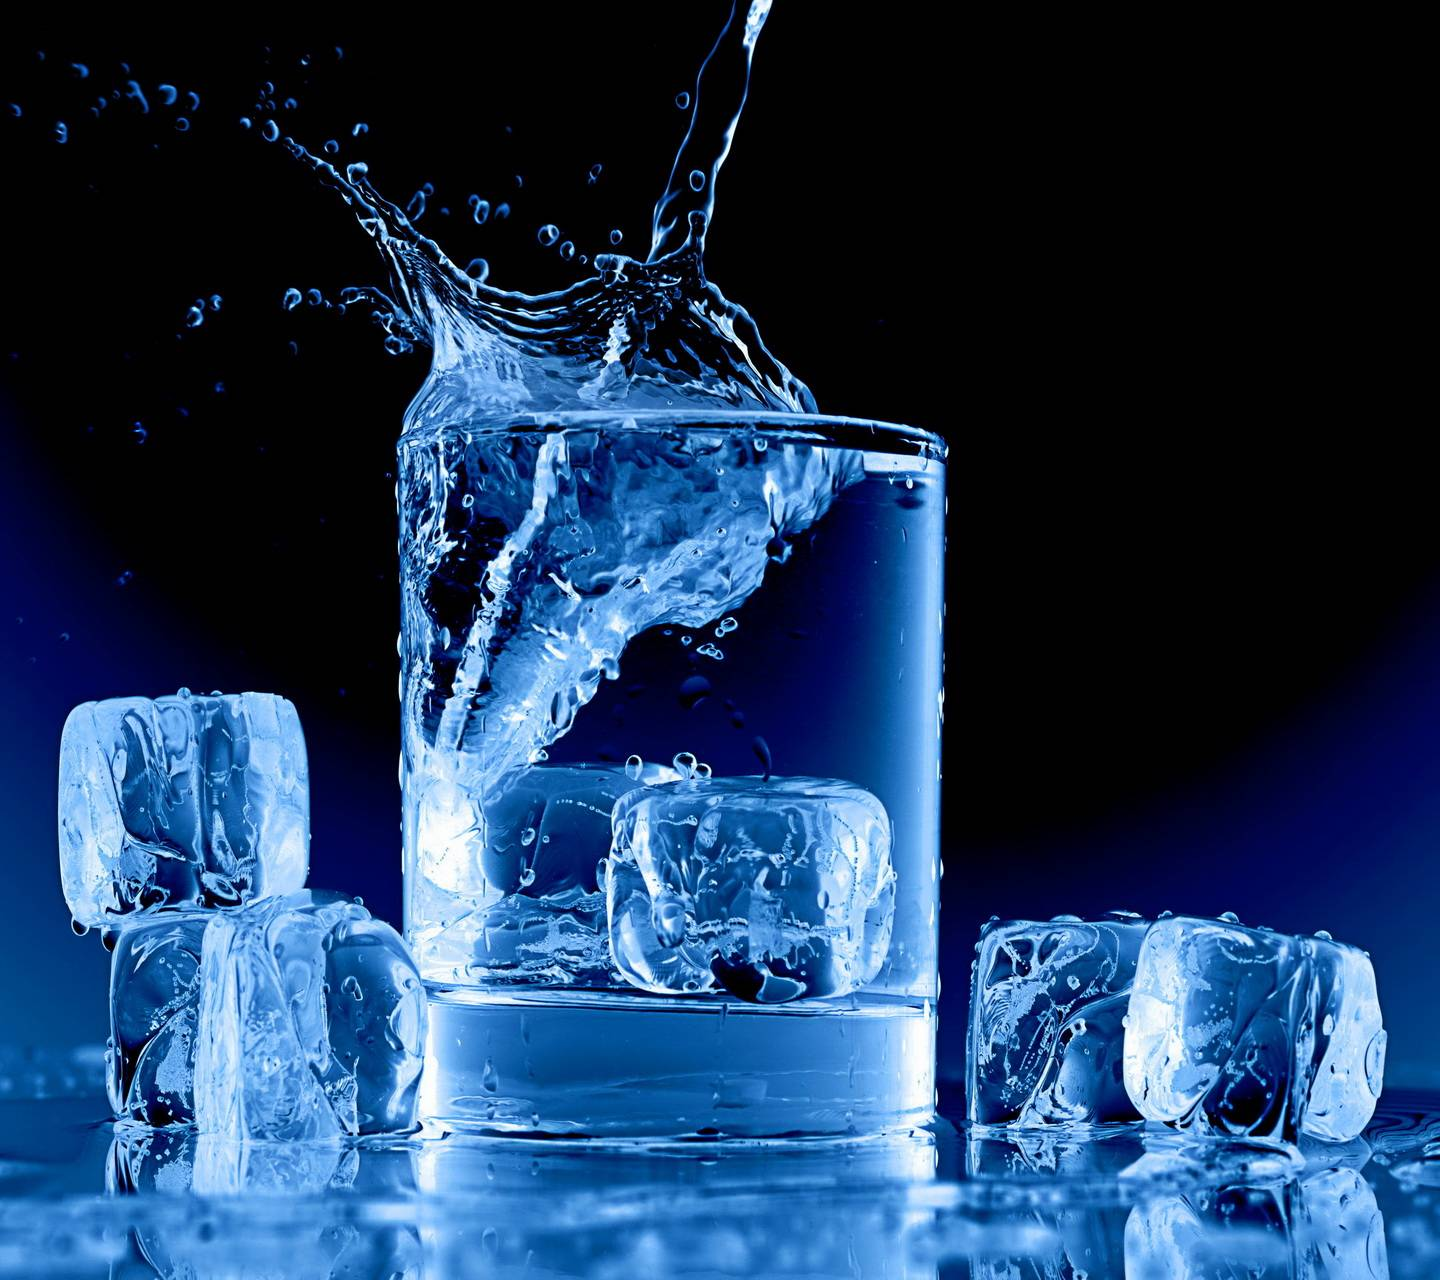 Ice Cold Wallpaper by S 0d Free on ZEDGE™